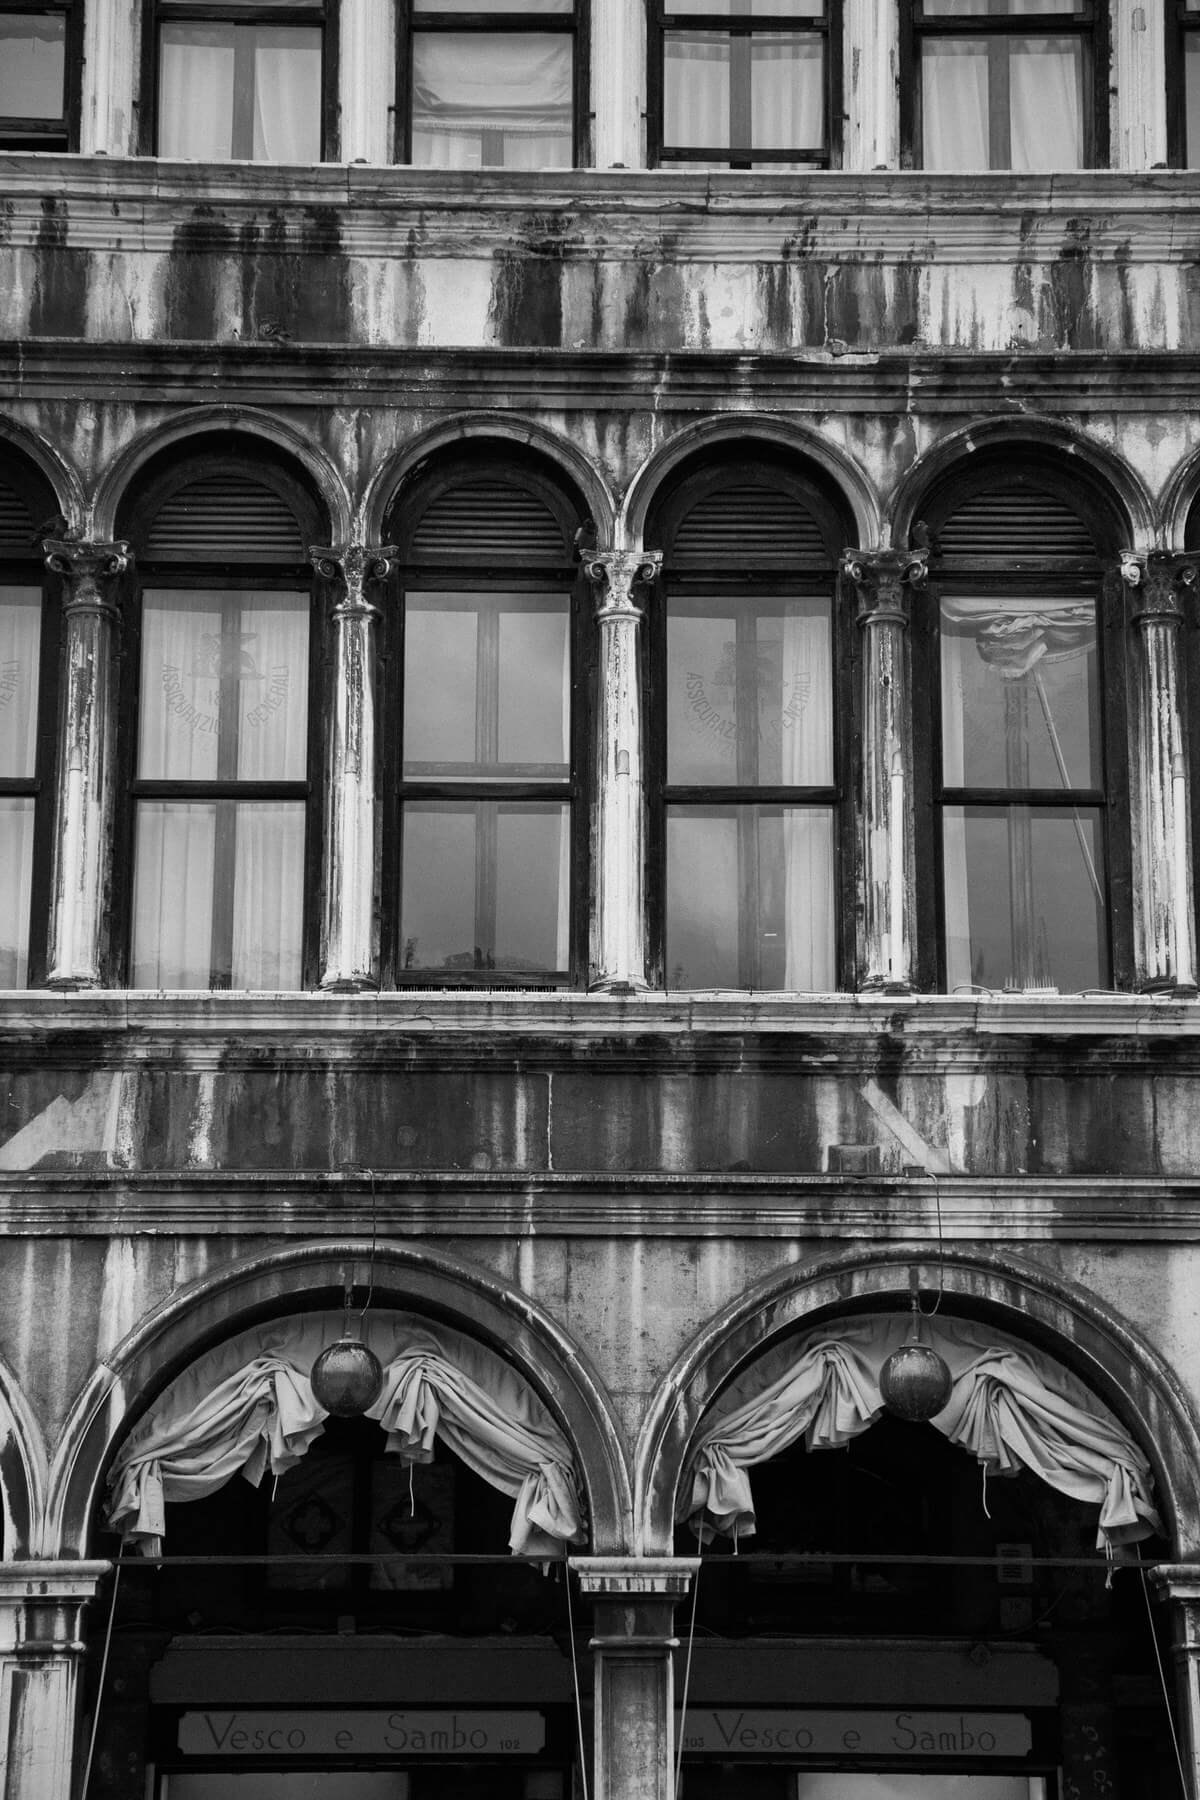 Venice-Italy-black-and-white-fine-art-photography-by-Studio-L-photographer-Laura-Schneider-_4042